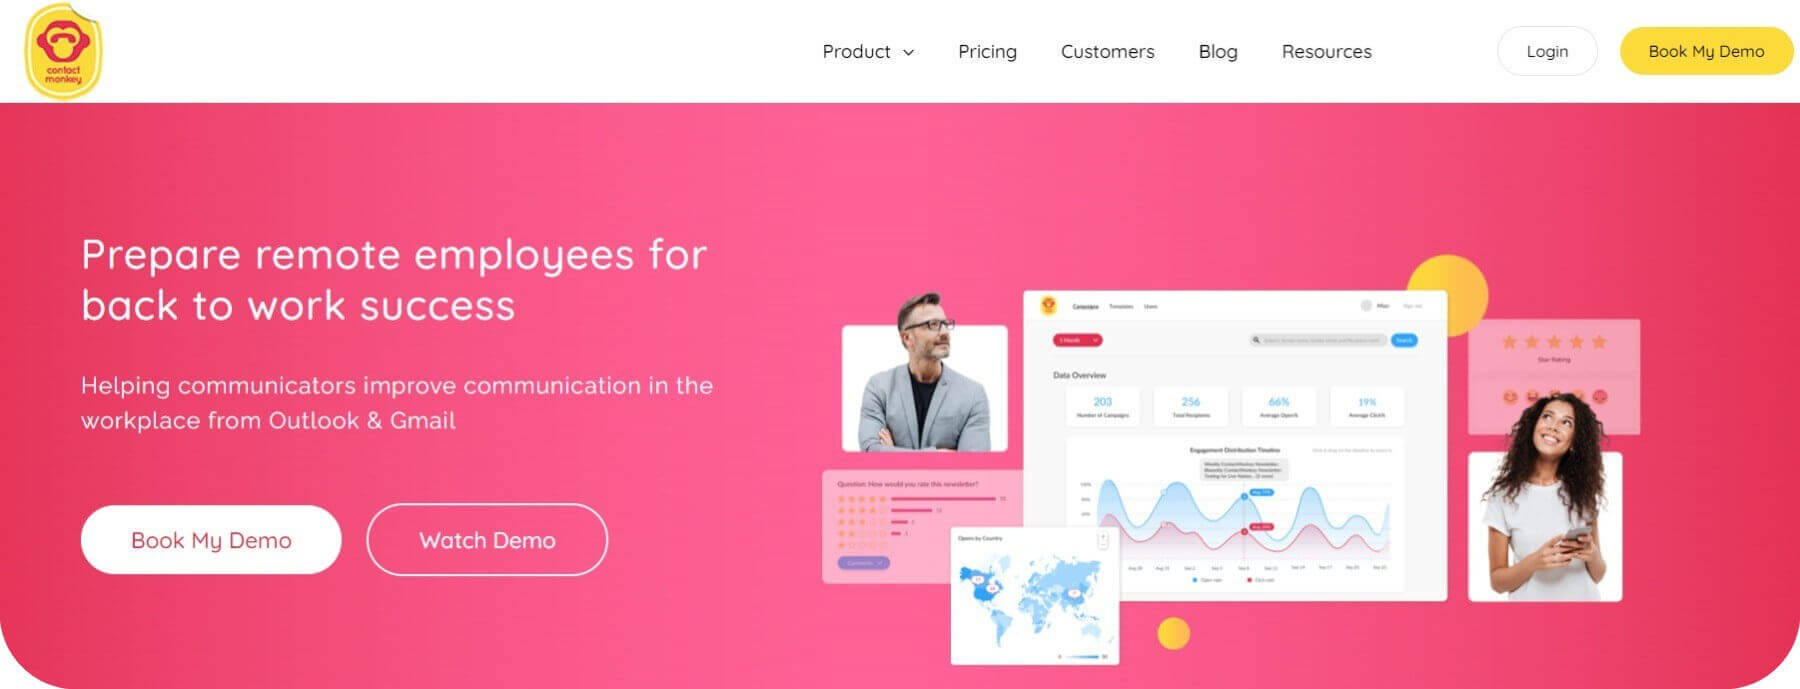 ContactMonkey Home Page